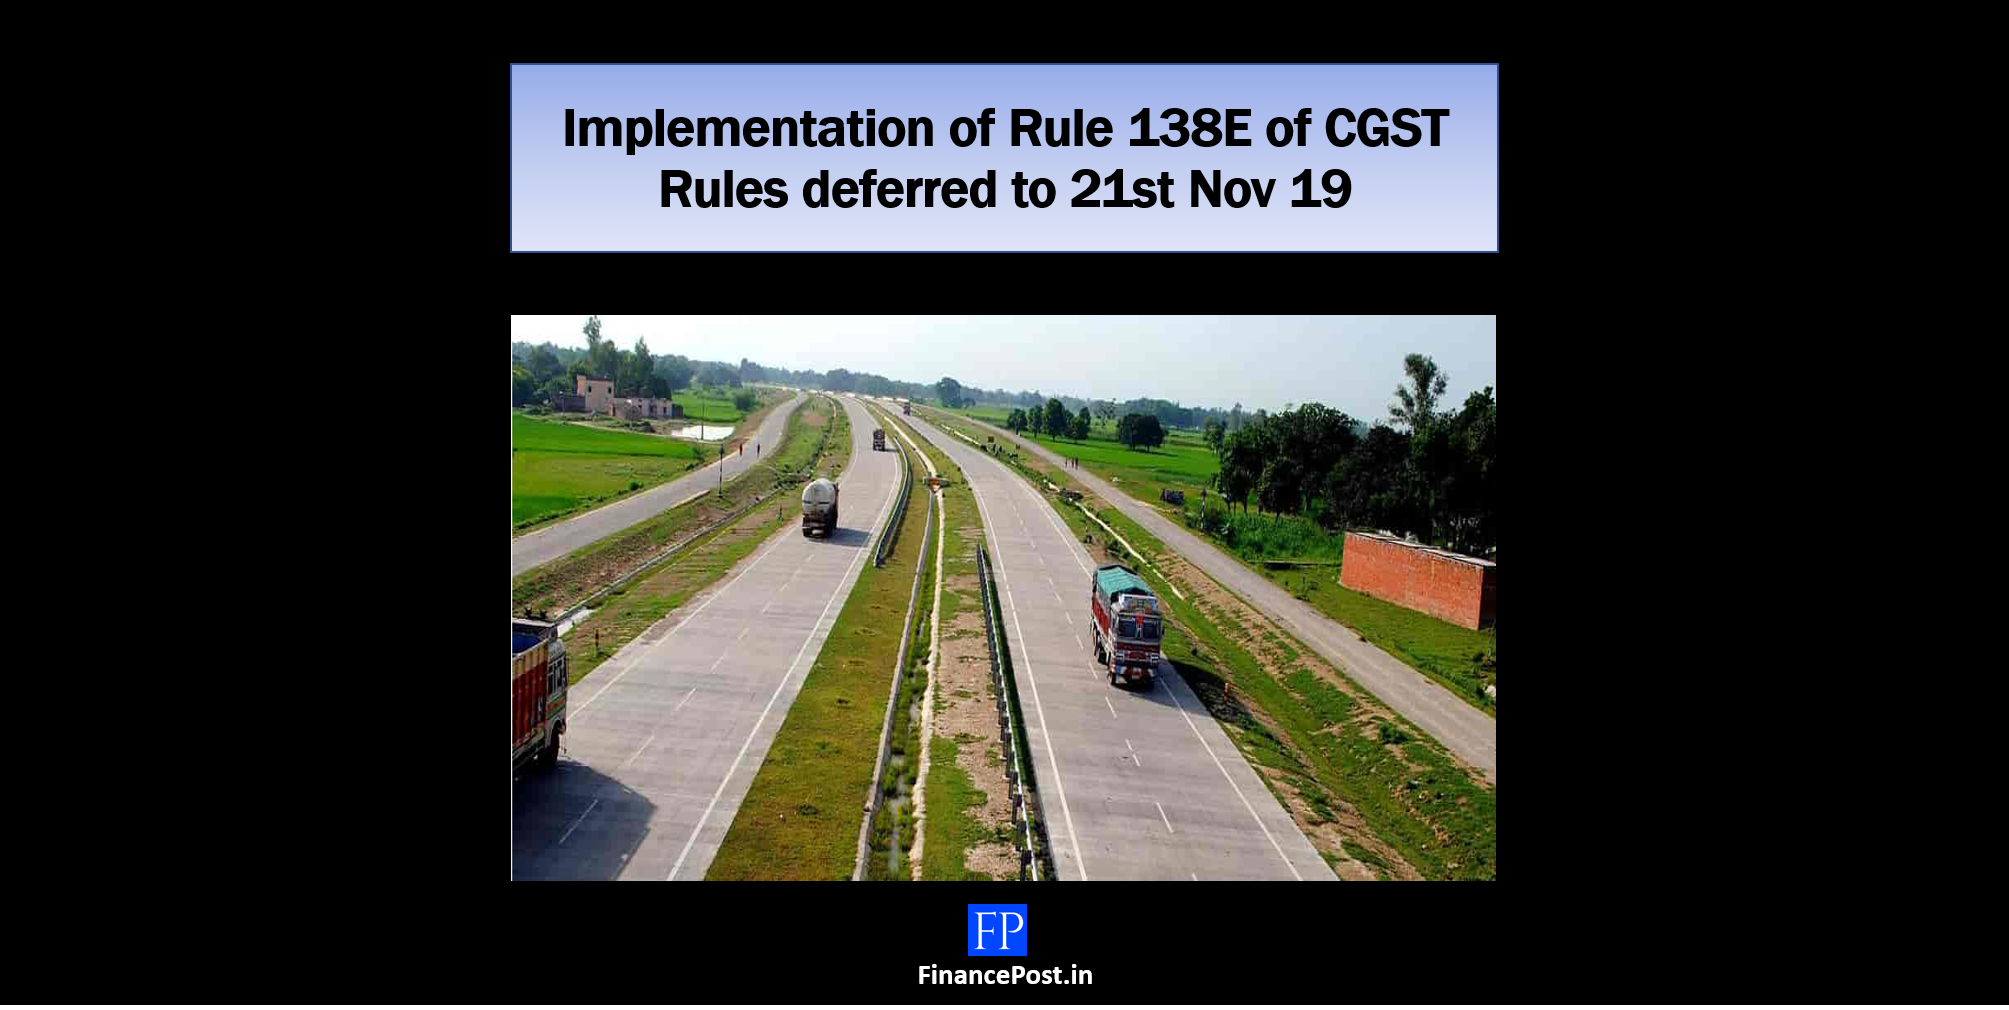 Implementation of Rule 138E of CGST Rules deferred to 21st Nov 19